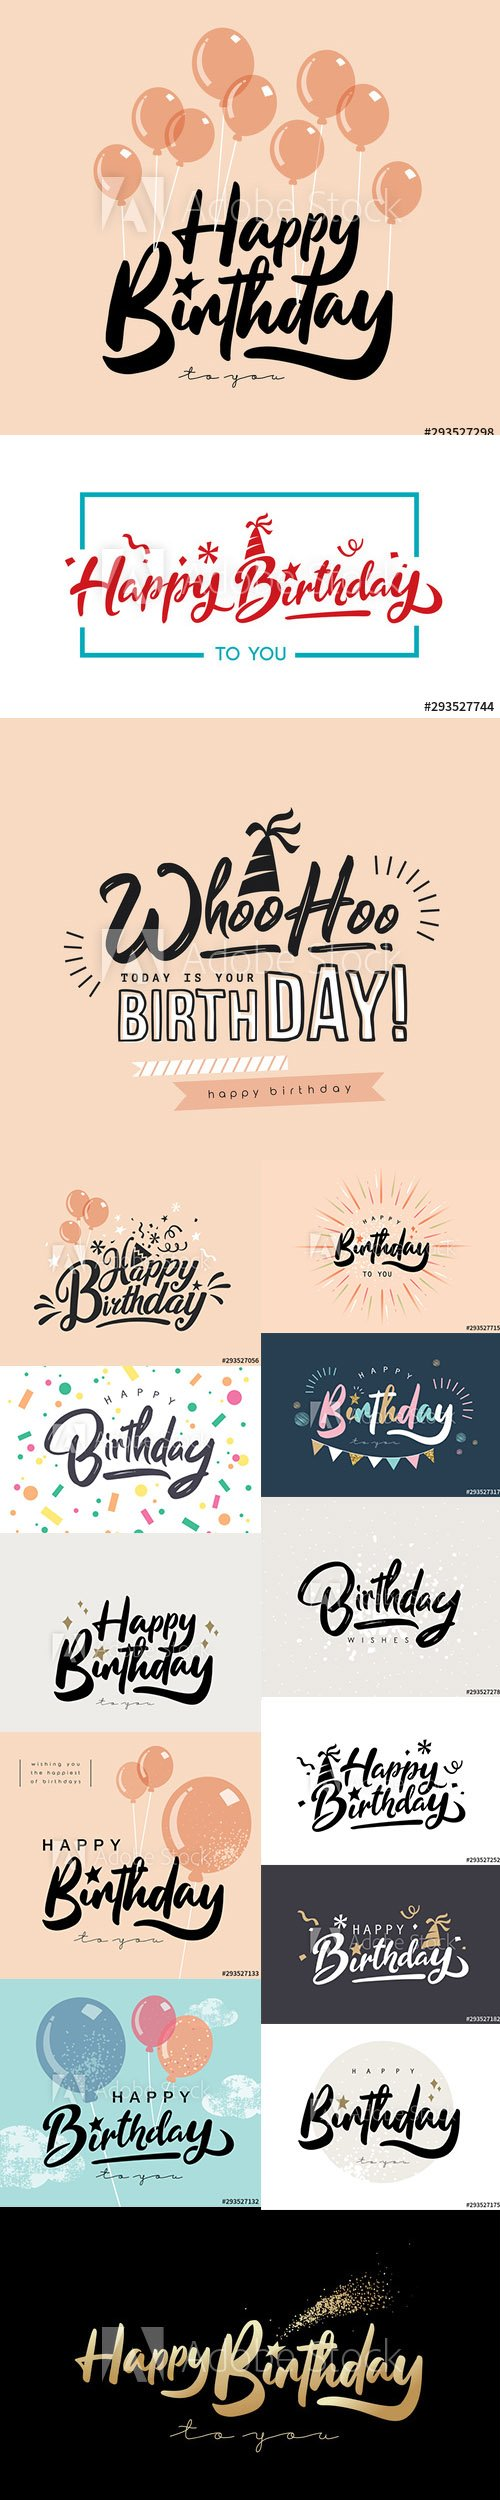 Happy Birthday Design for Greeting Cards and Poster